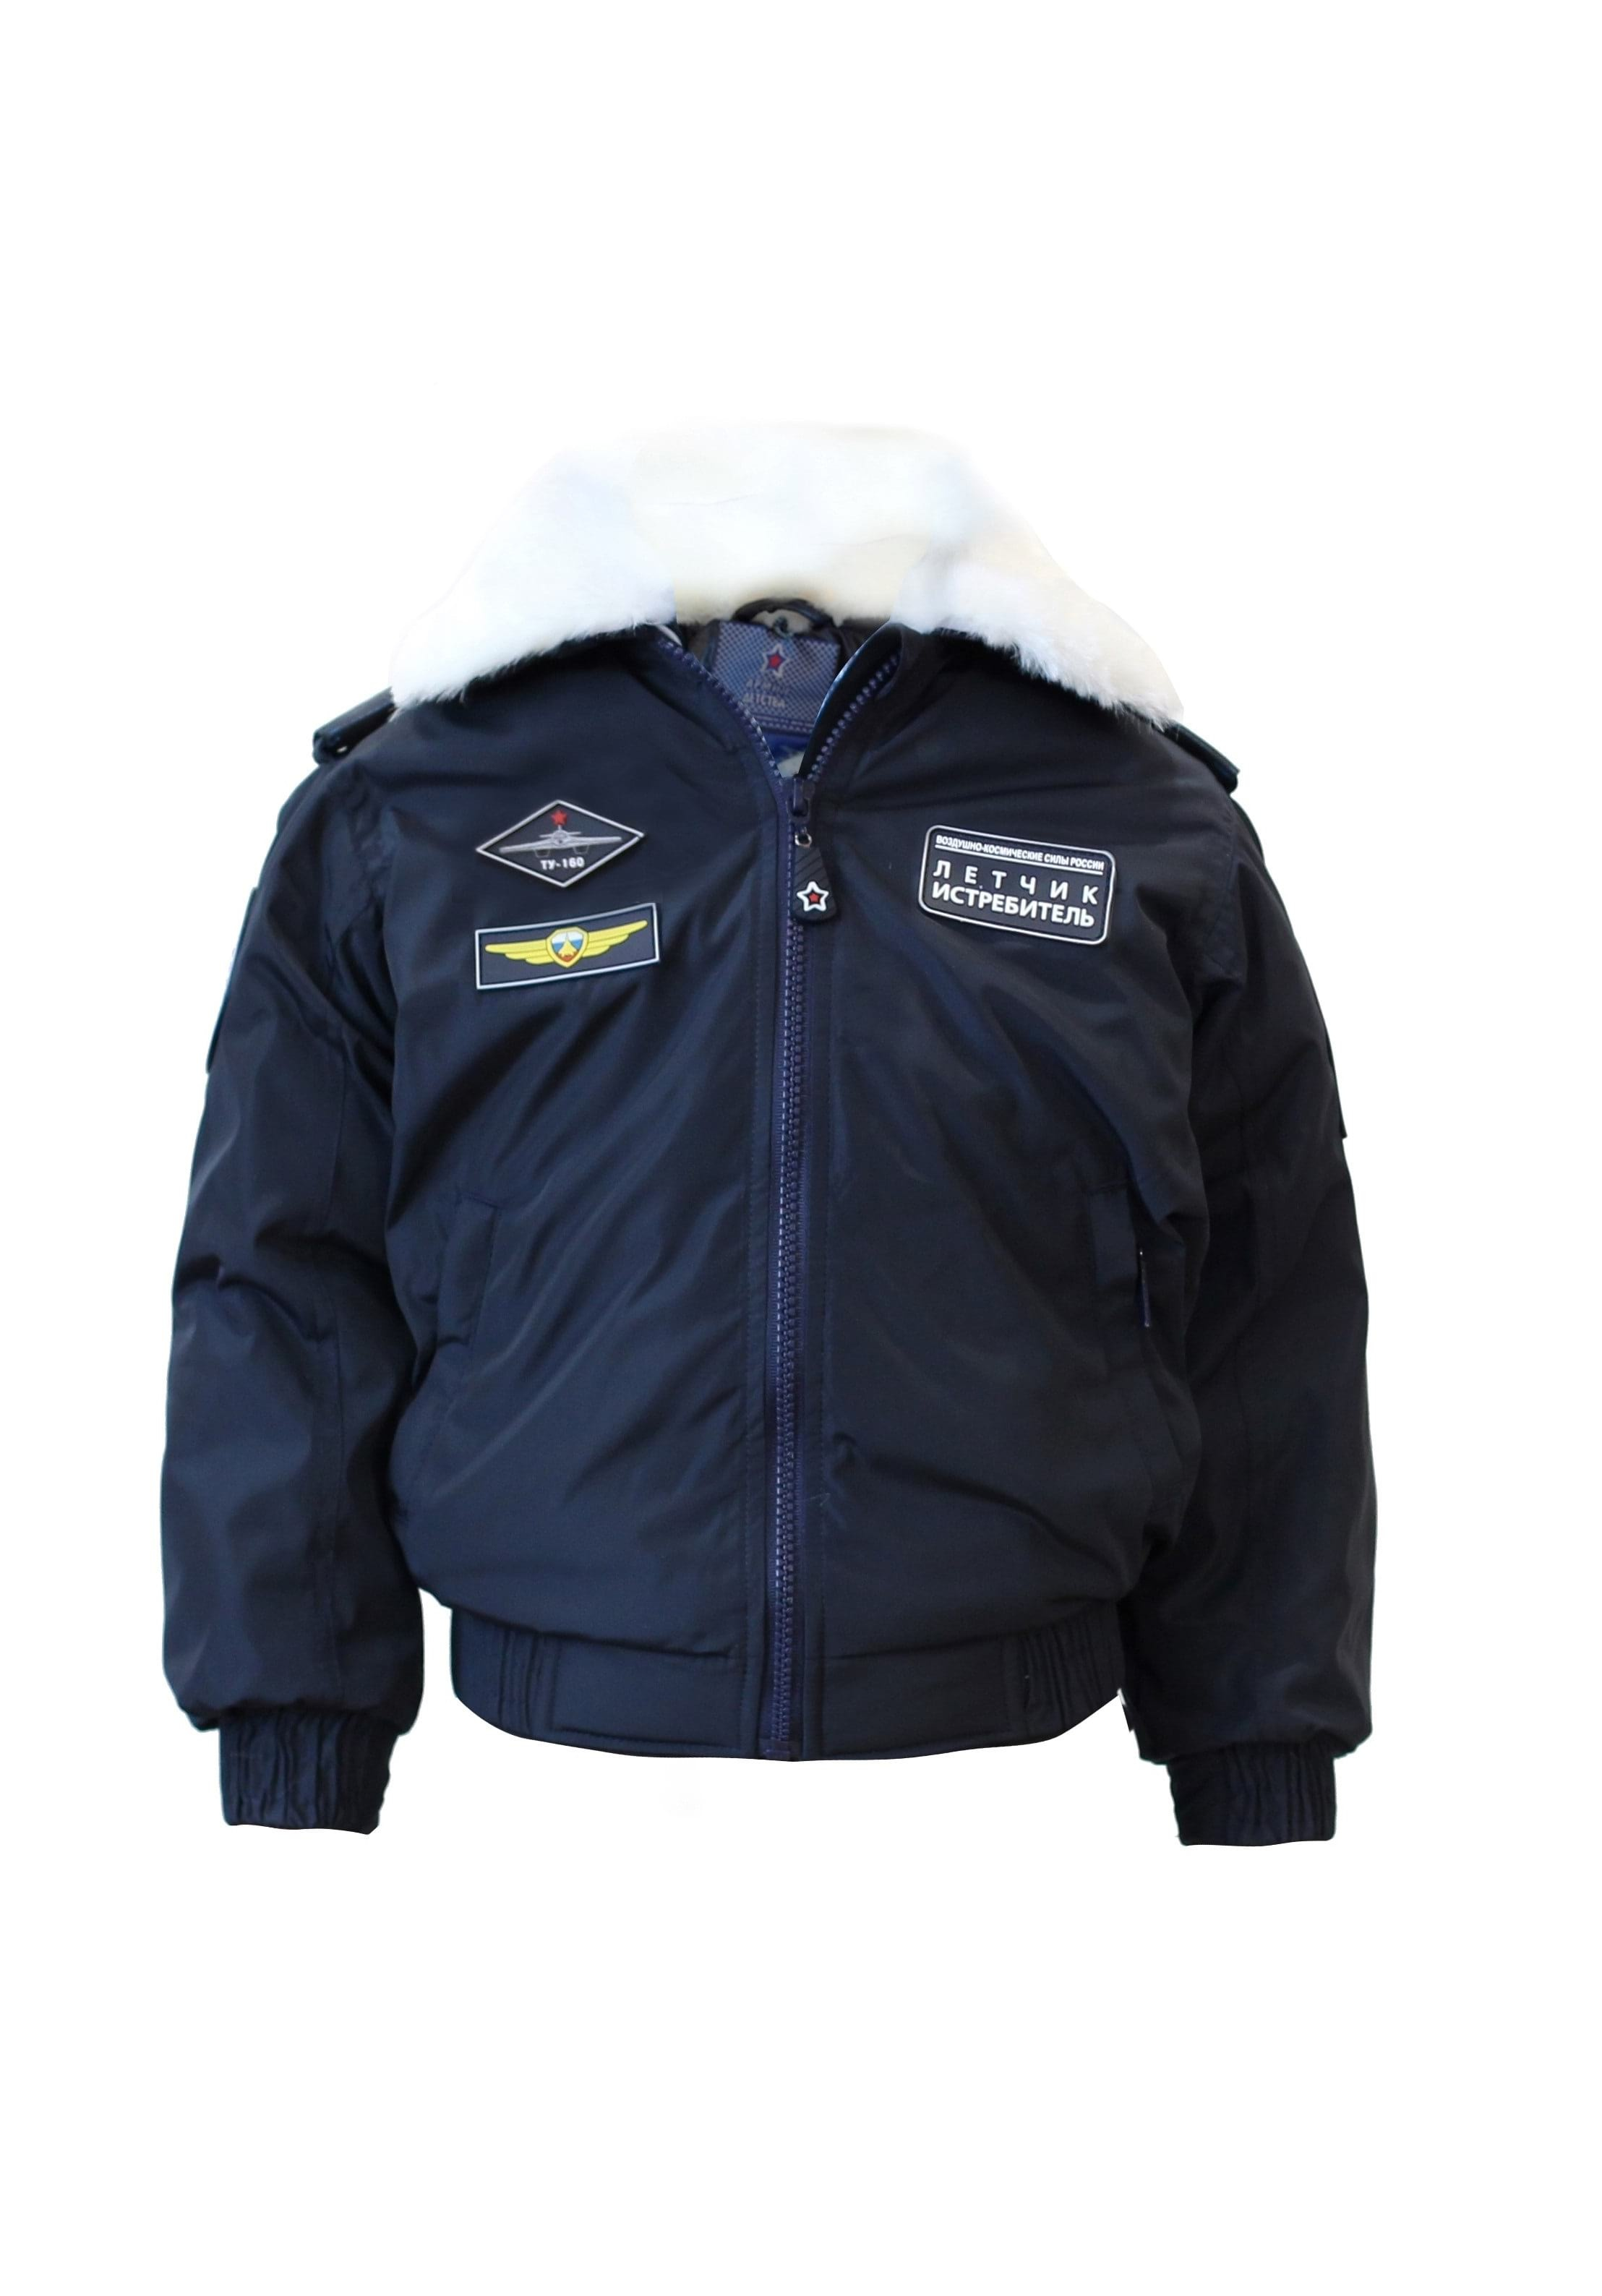 Children's Jacket «Sky» (textile) TU-160